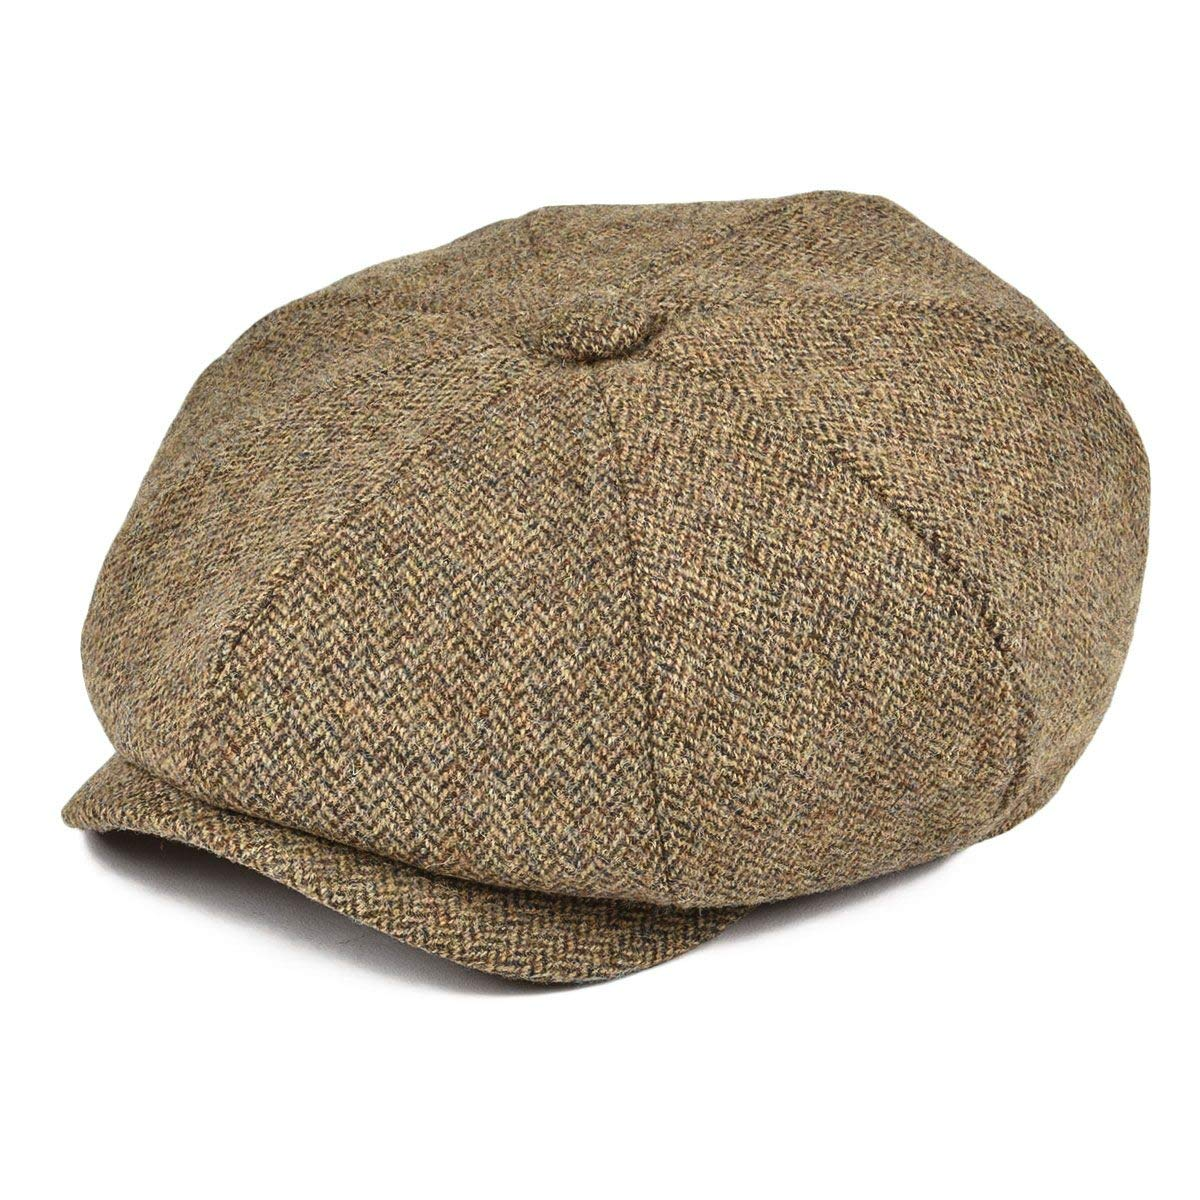 1920s Men's Hats – 8 Popular Styles BOTVELA Mens Premium Wool Classic Flat Ivy Newsboy Cap Herringbone Pattern Flecked Hat $29.99 AT vintagedancer.com